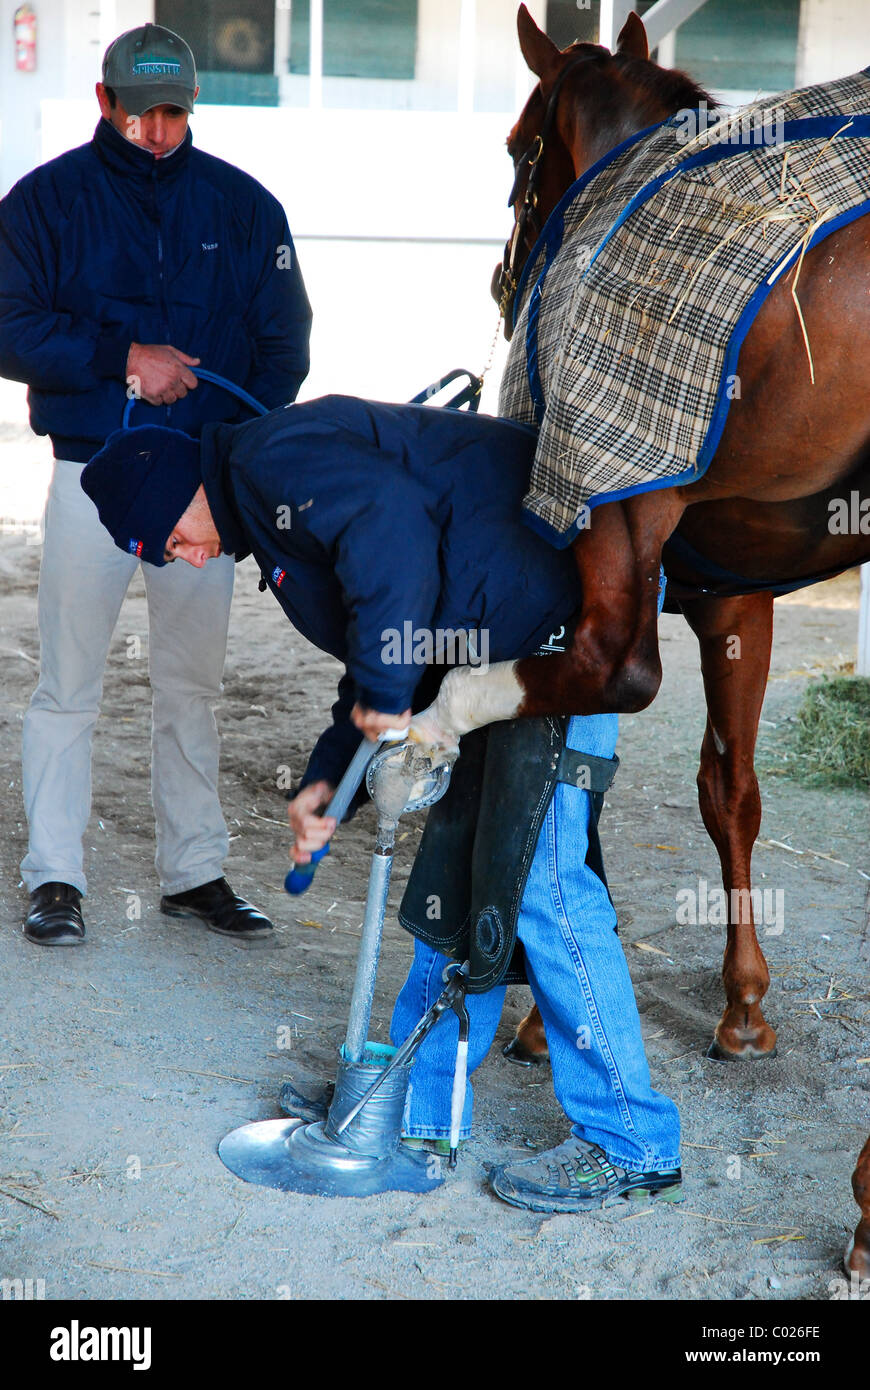 Workers file a hoof on a thoroughbred racehorse in the stable area of Keeneland Race Track, Lexington, Kentucky. - Stock Image